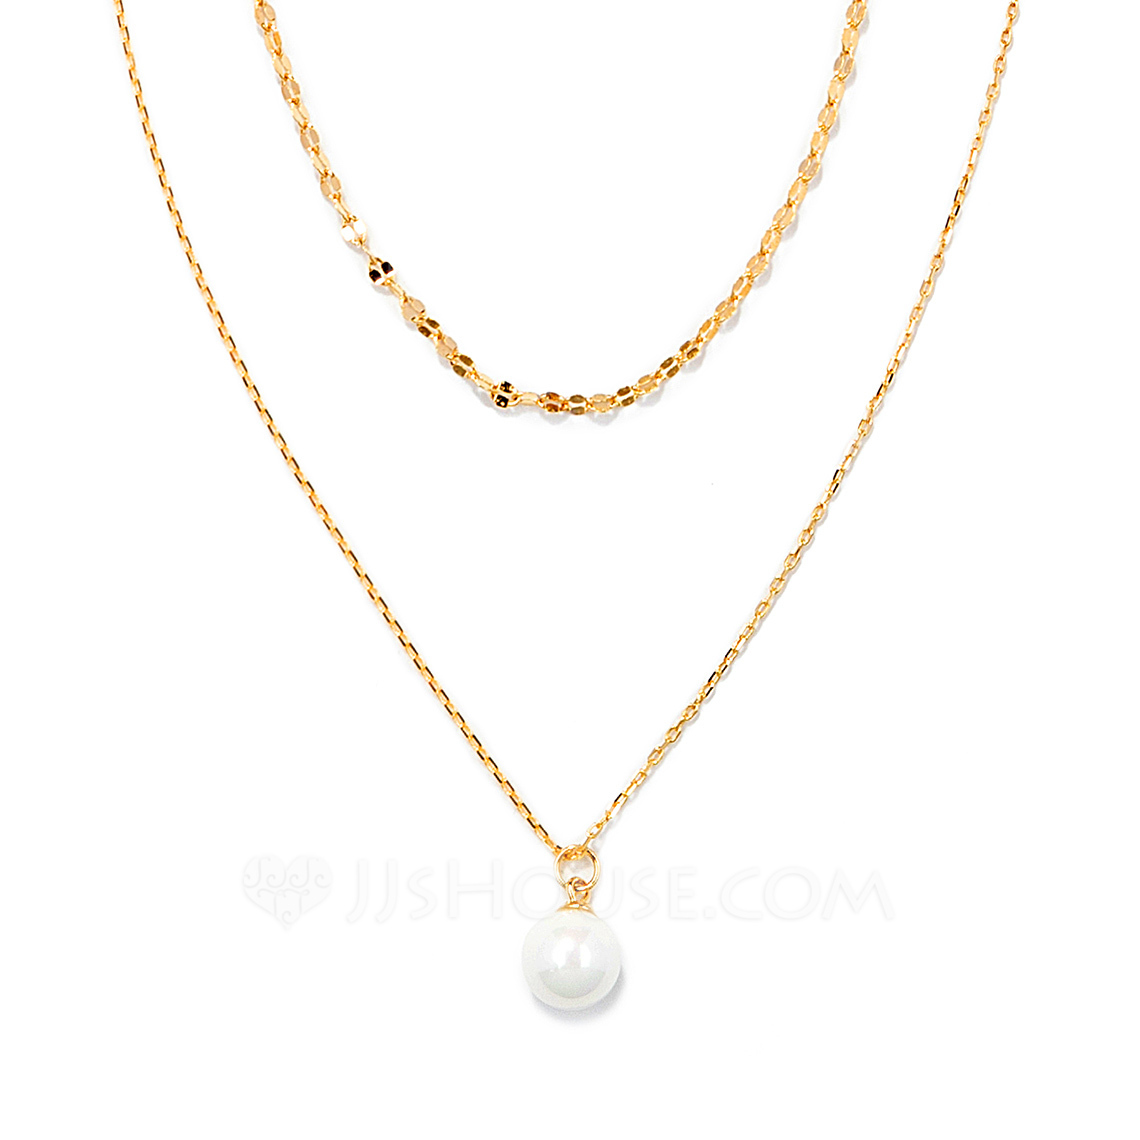 18k Gold Plated Silver Double Pearl Pendant Necklace - Birthday Gifts Mother's Day Gifts